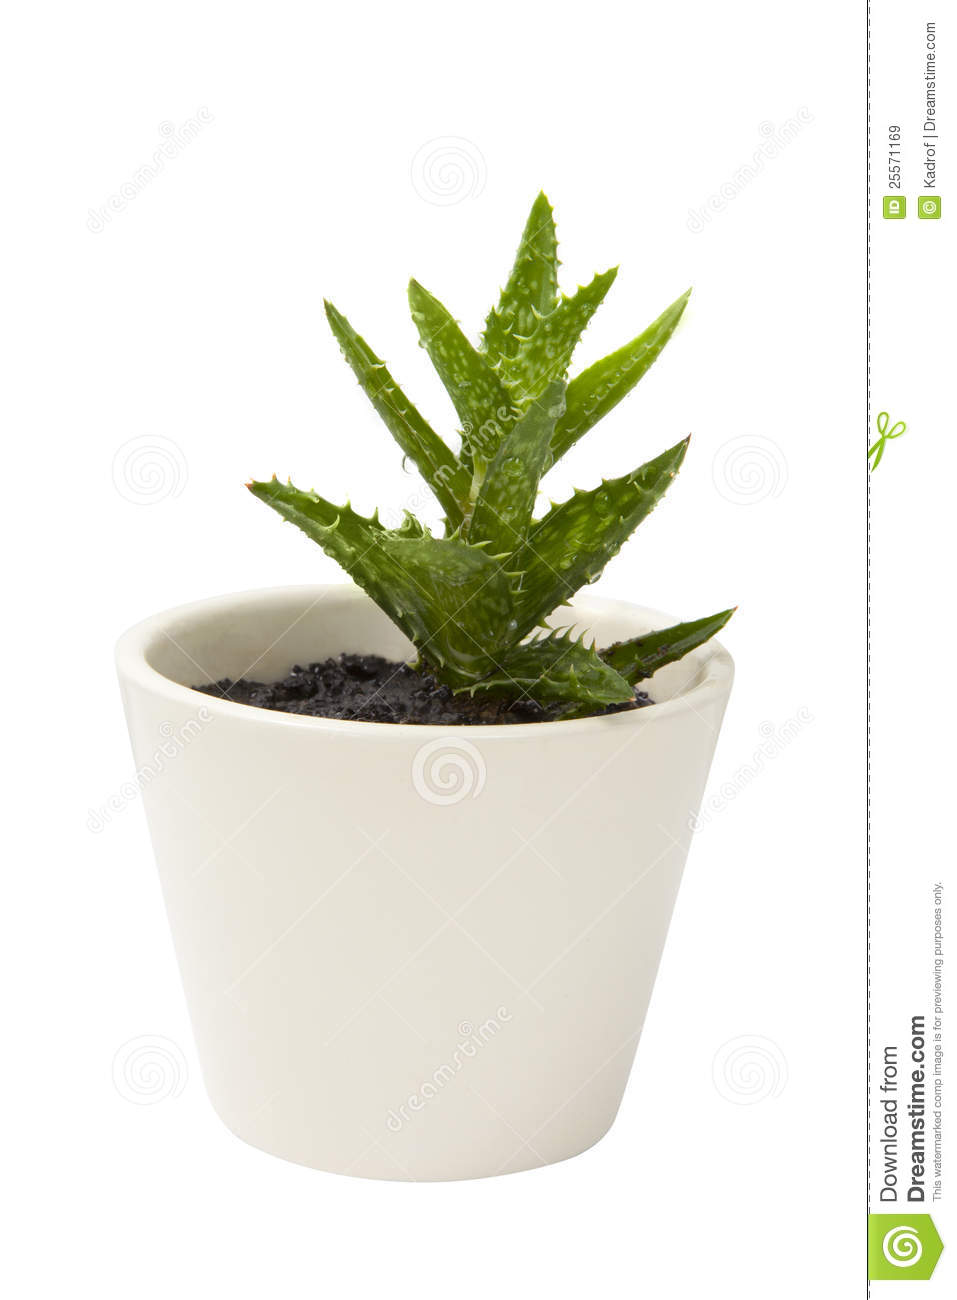 Aloe vera plant in the white clay pot royalty free stock images image 25571169 - Aloe vera en pot ...